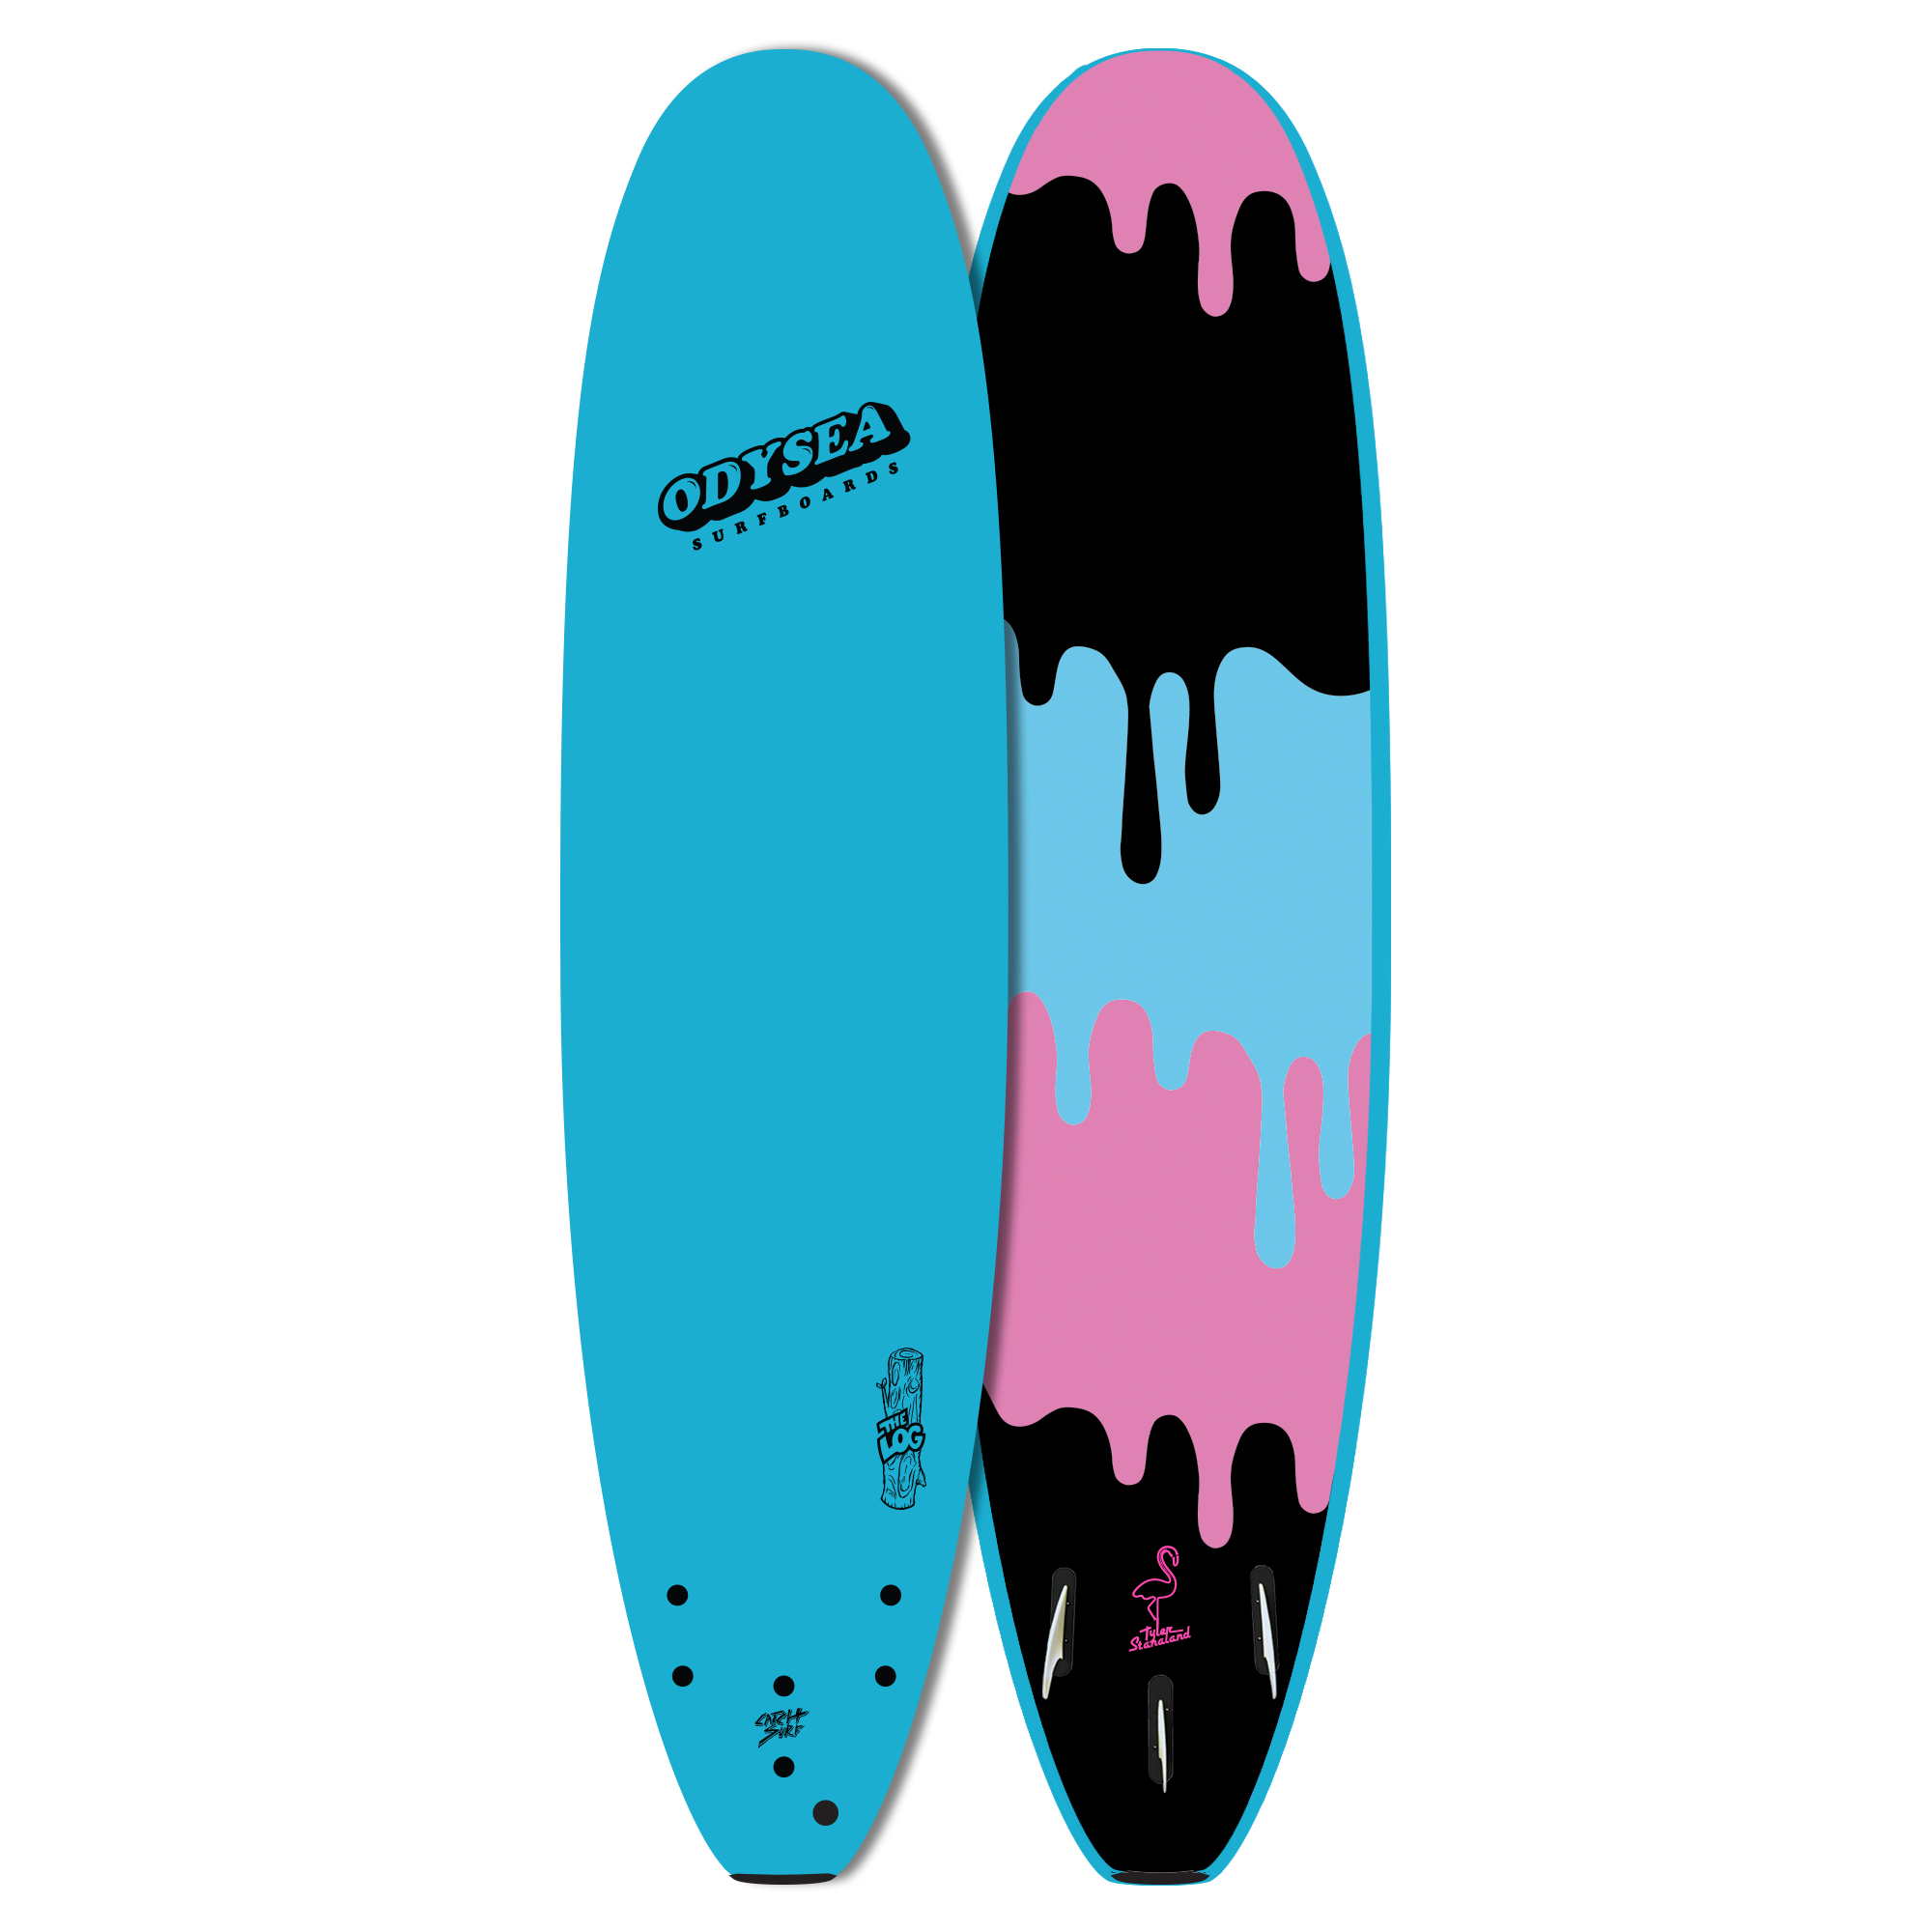 "【送料無料】2021 CATCH SURF ODYSEA LOG 8'0"" TYLER STANALAND Pro※即納可能な千葉在庫"